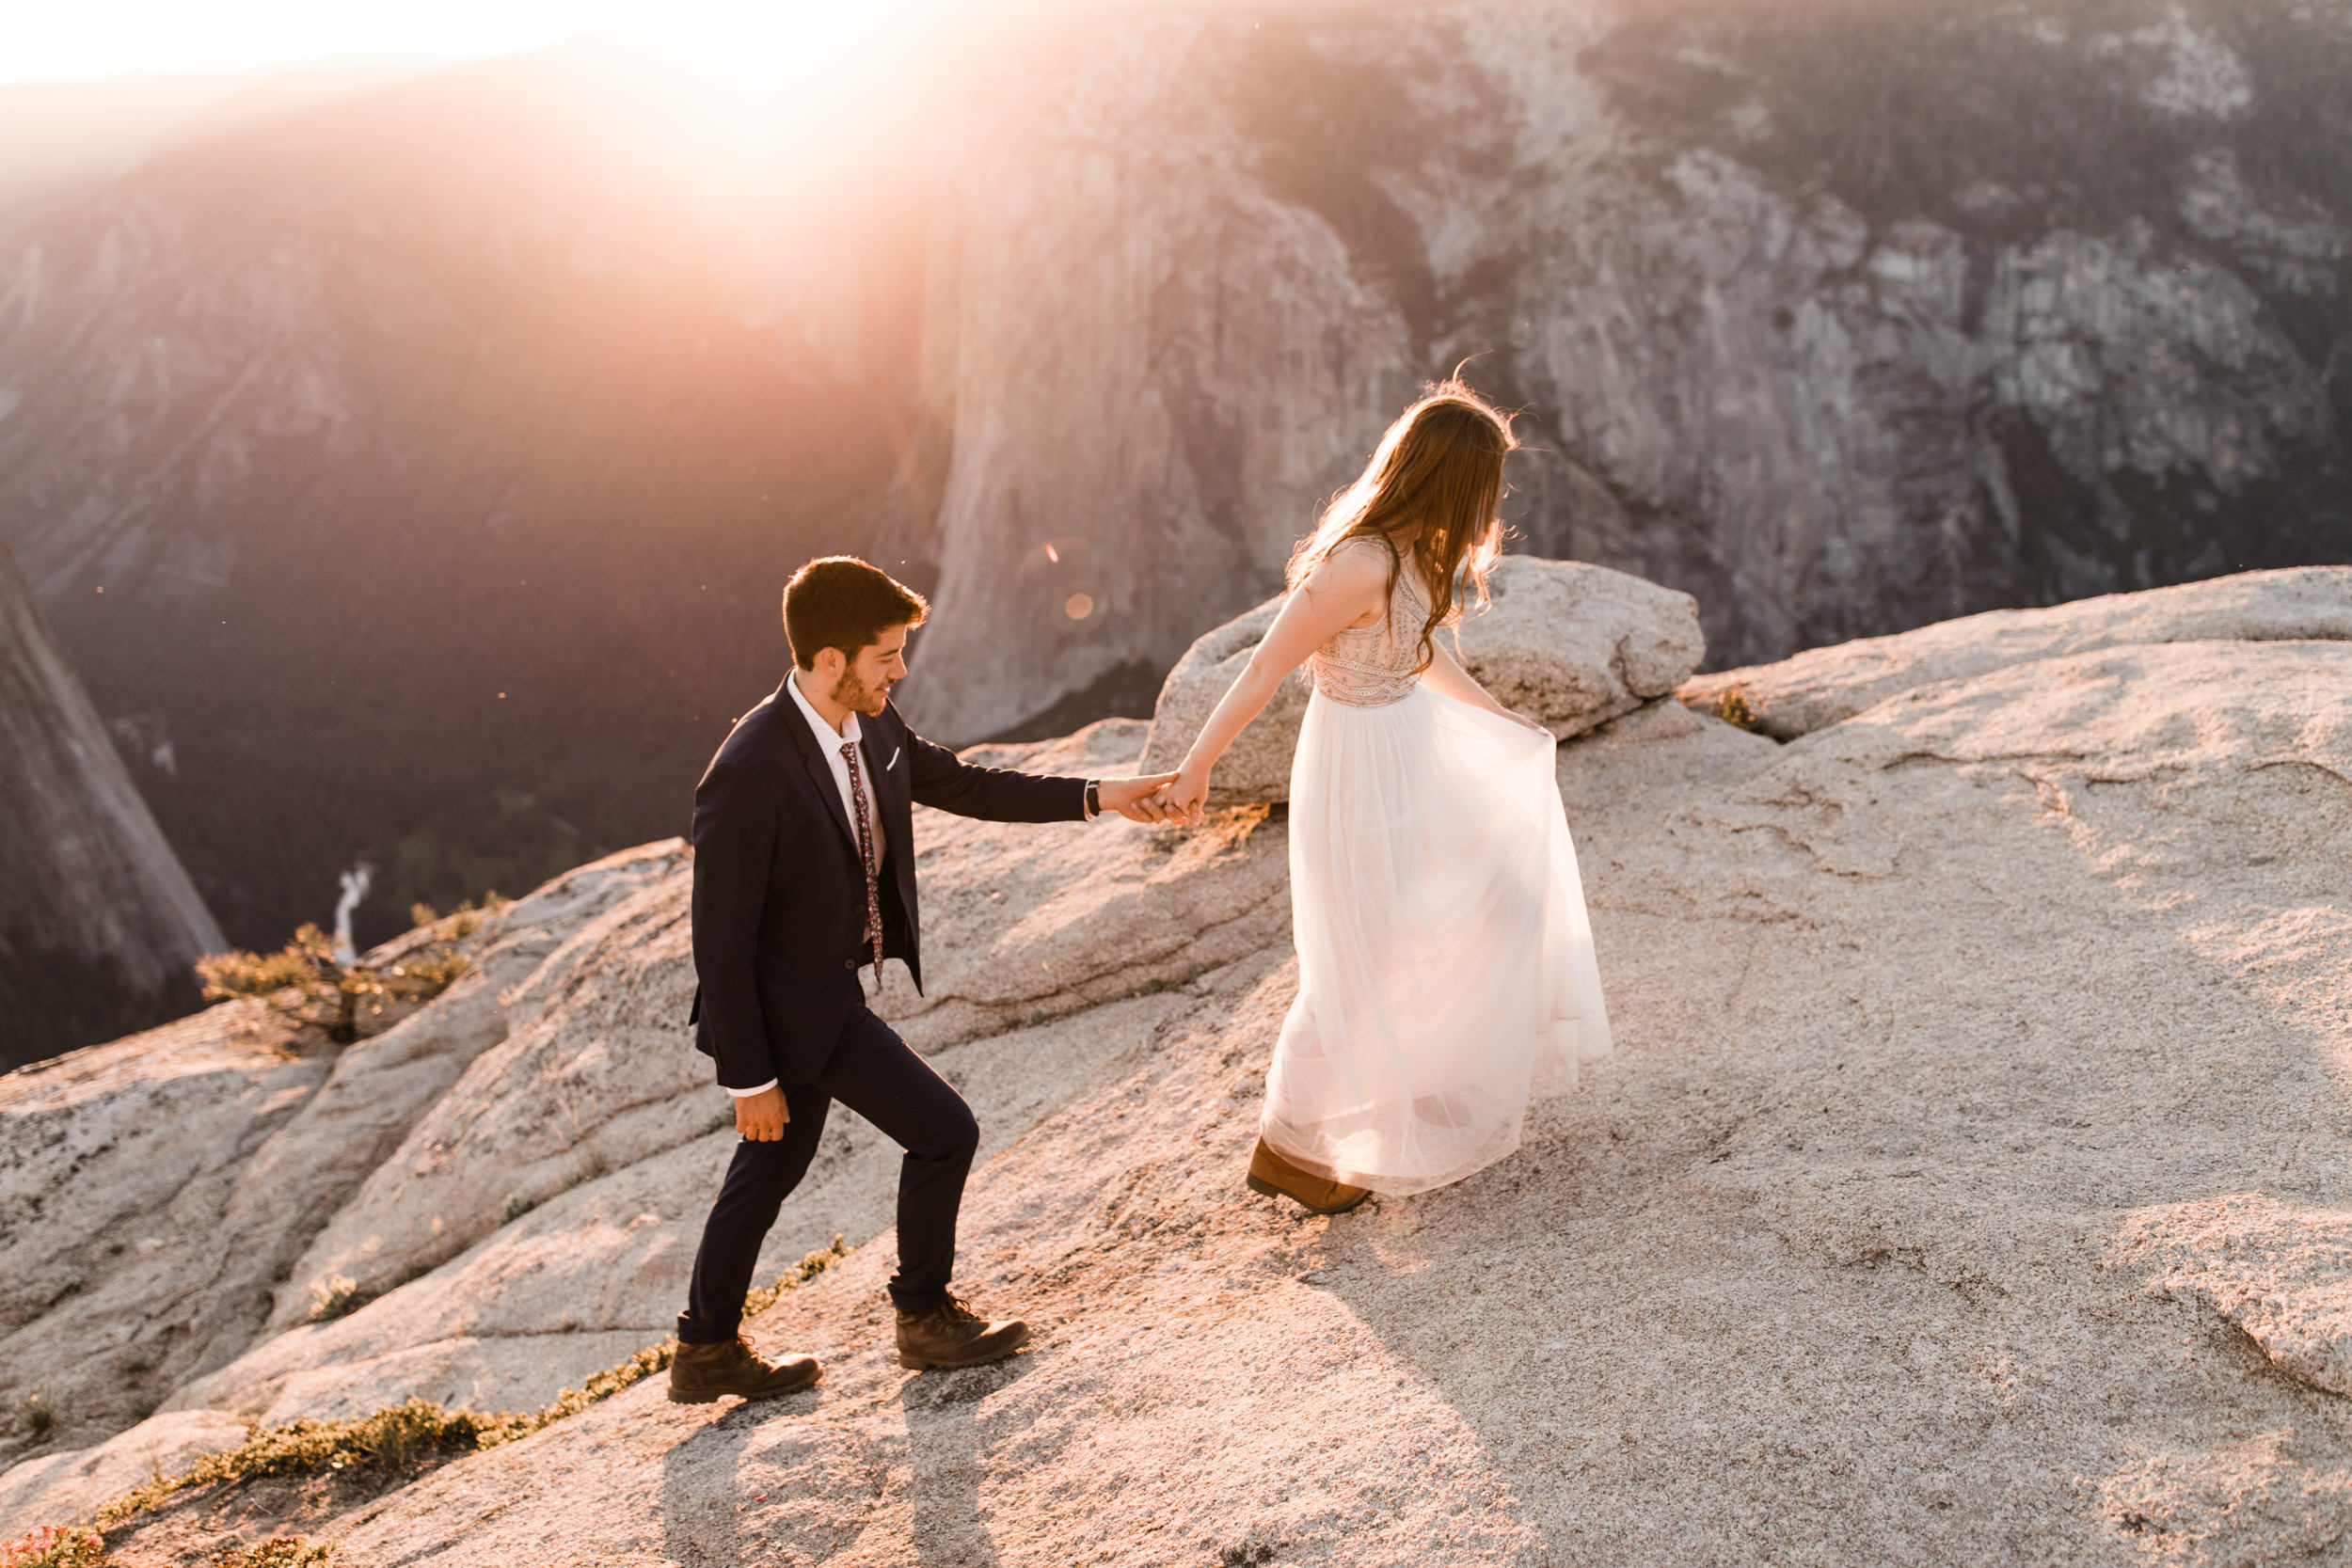 Hearnes-Elopement-Photography-Yosemite-Wedding-Photographer-Taft-Point-Adventure-21.jpg